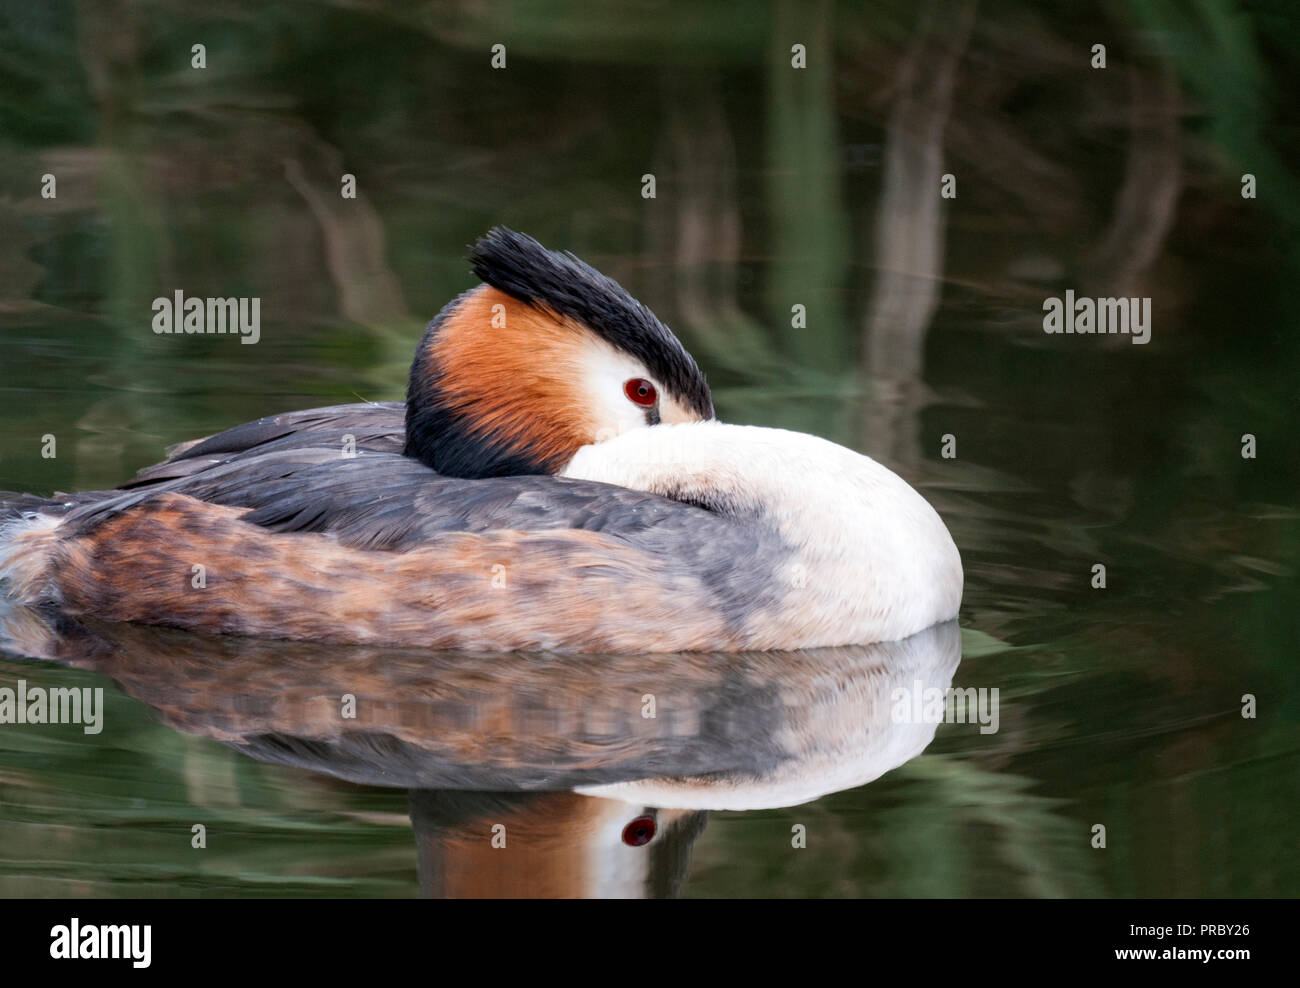 Great Crested Grebe (Podiceps cristatus).Adult in summer plumage. - Stock Image